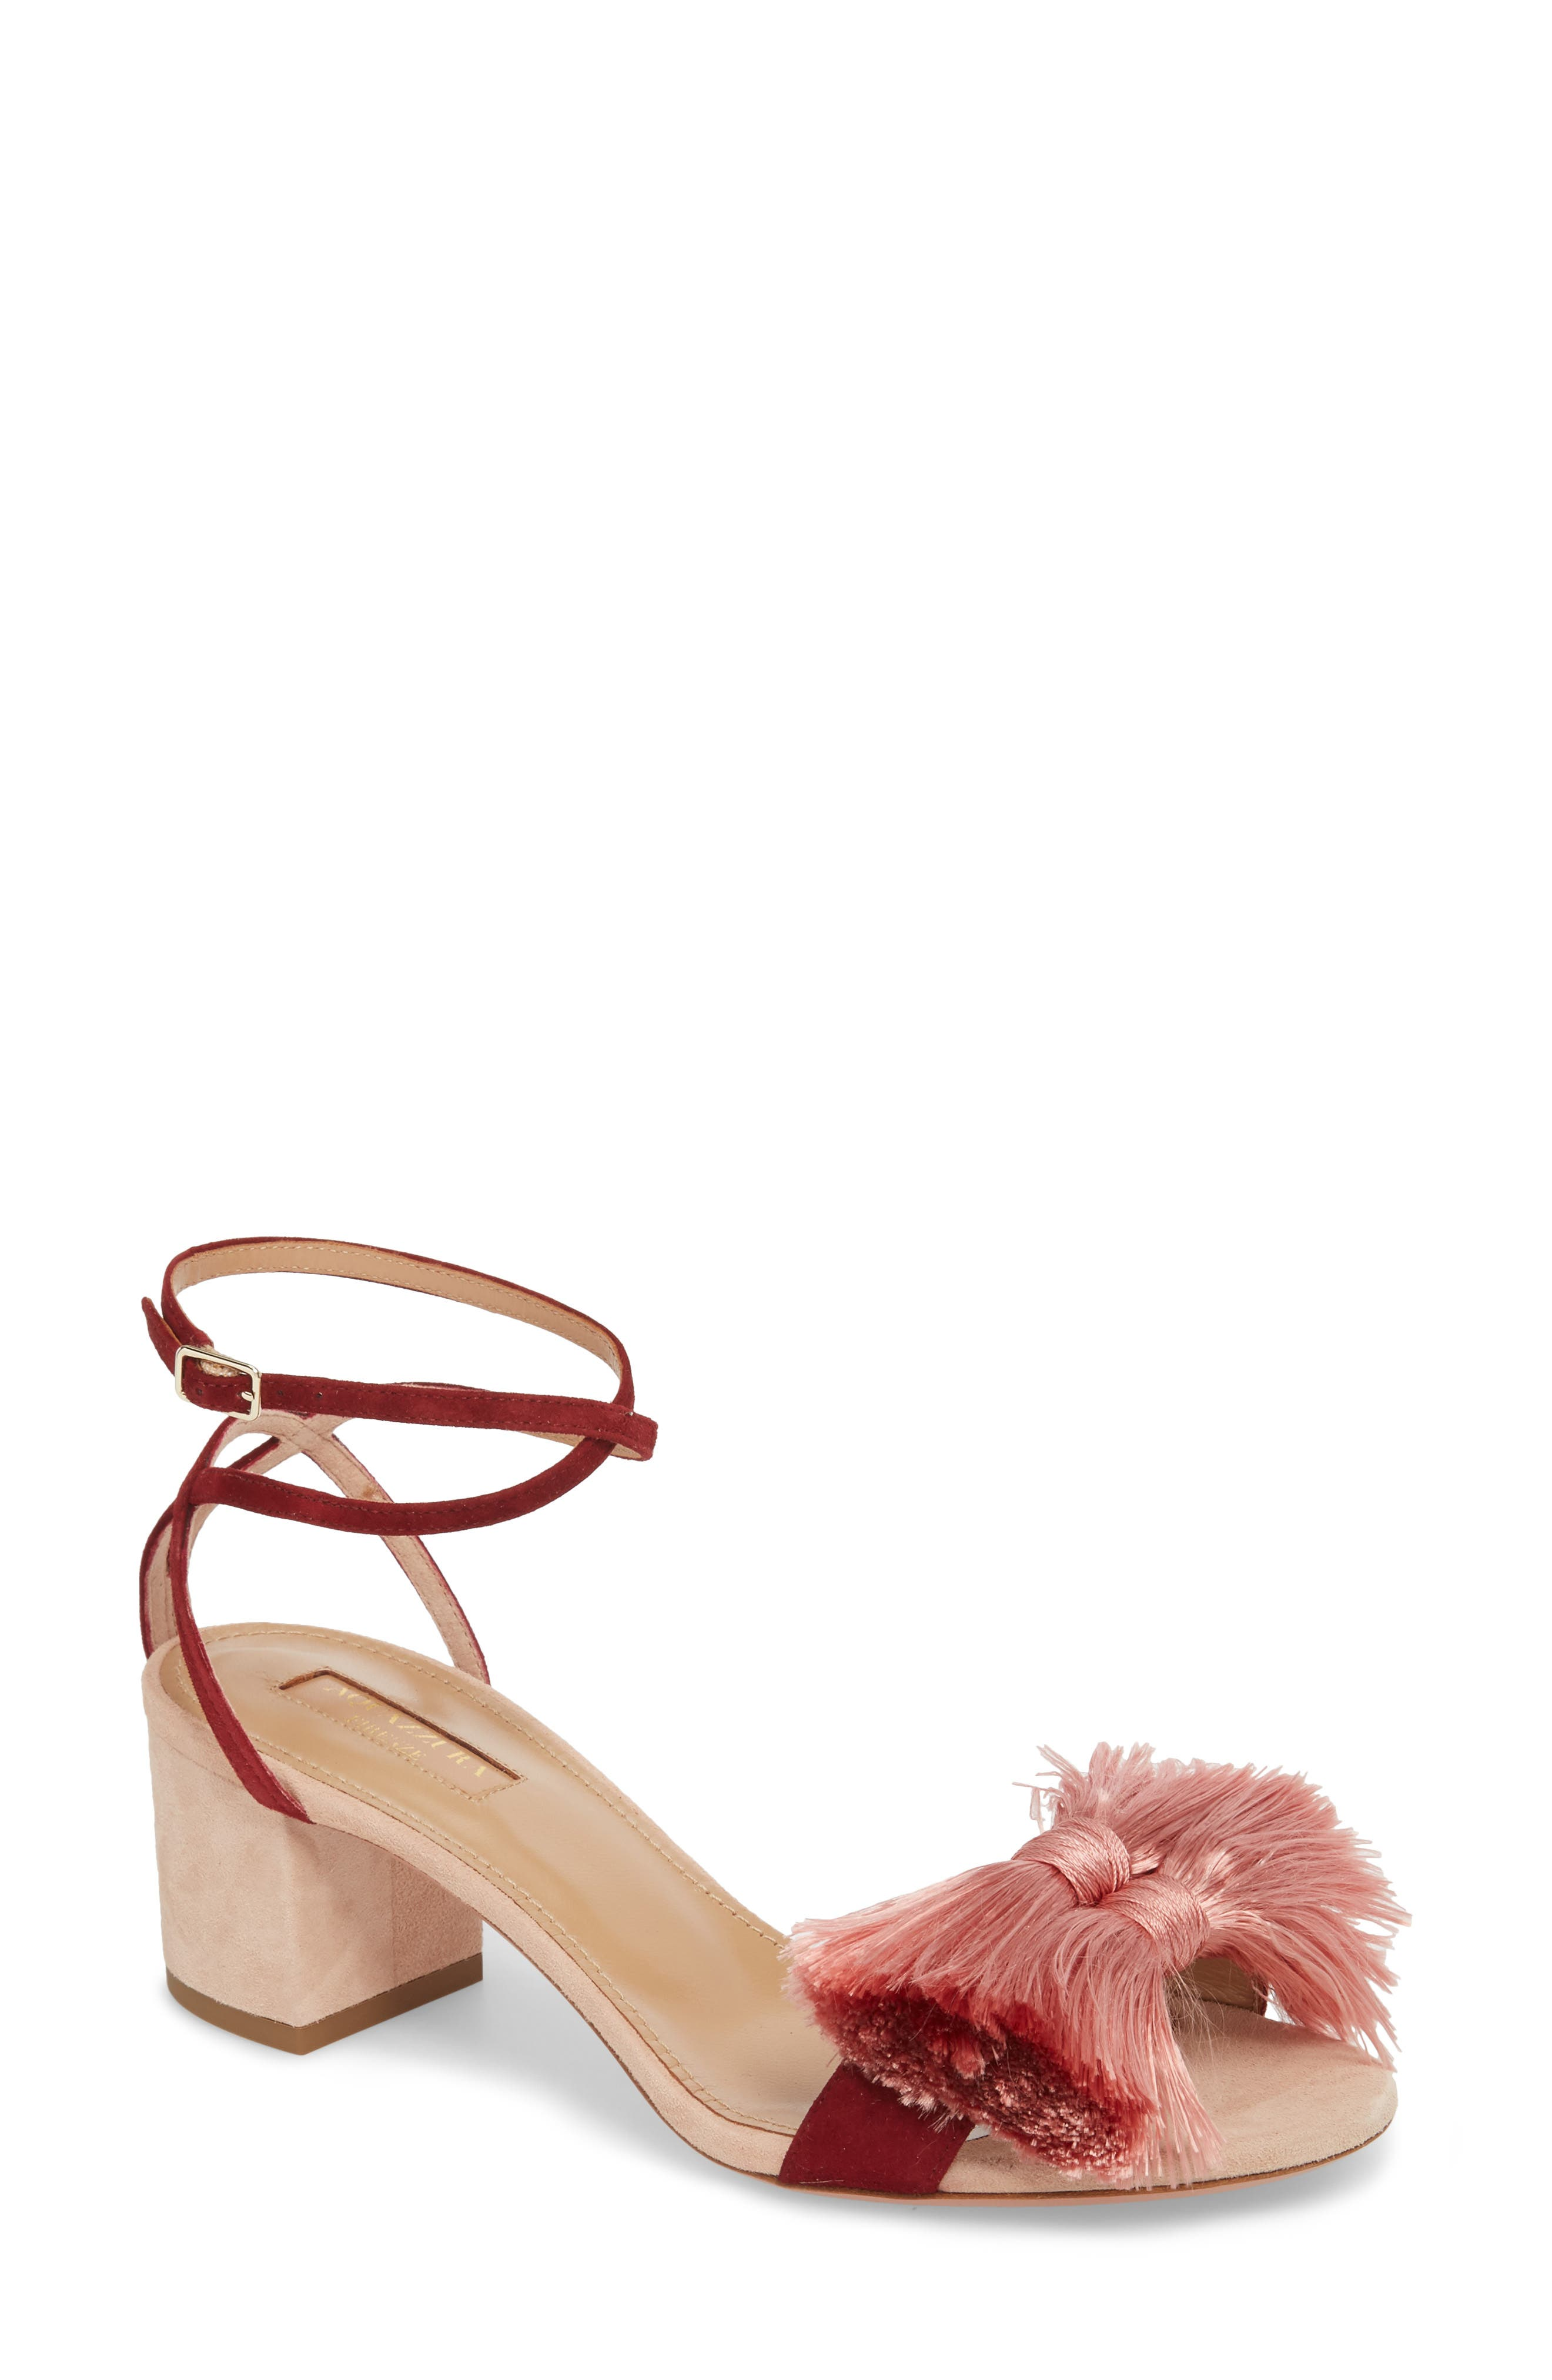 Lotus Blossom Sandal,                             Main thumbnail 1, color,                             601